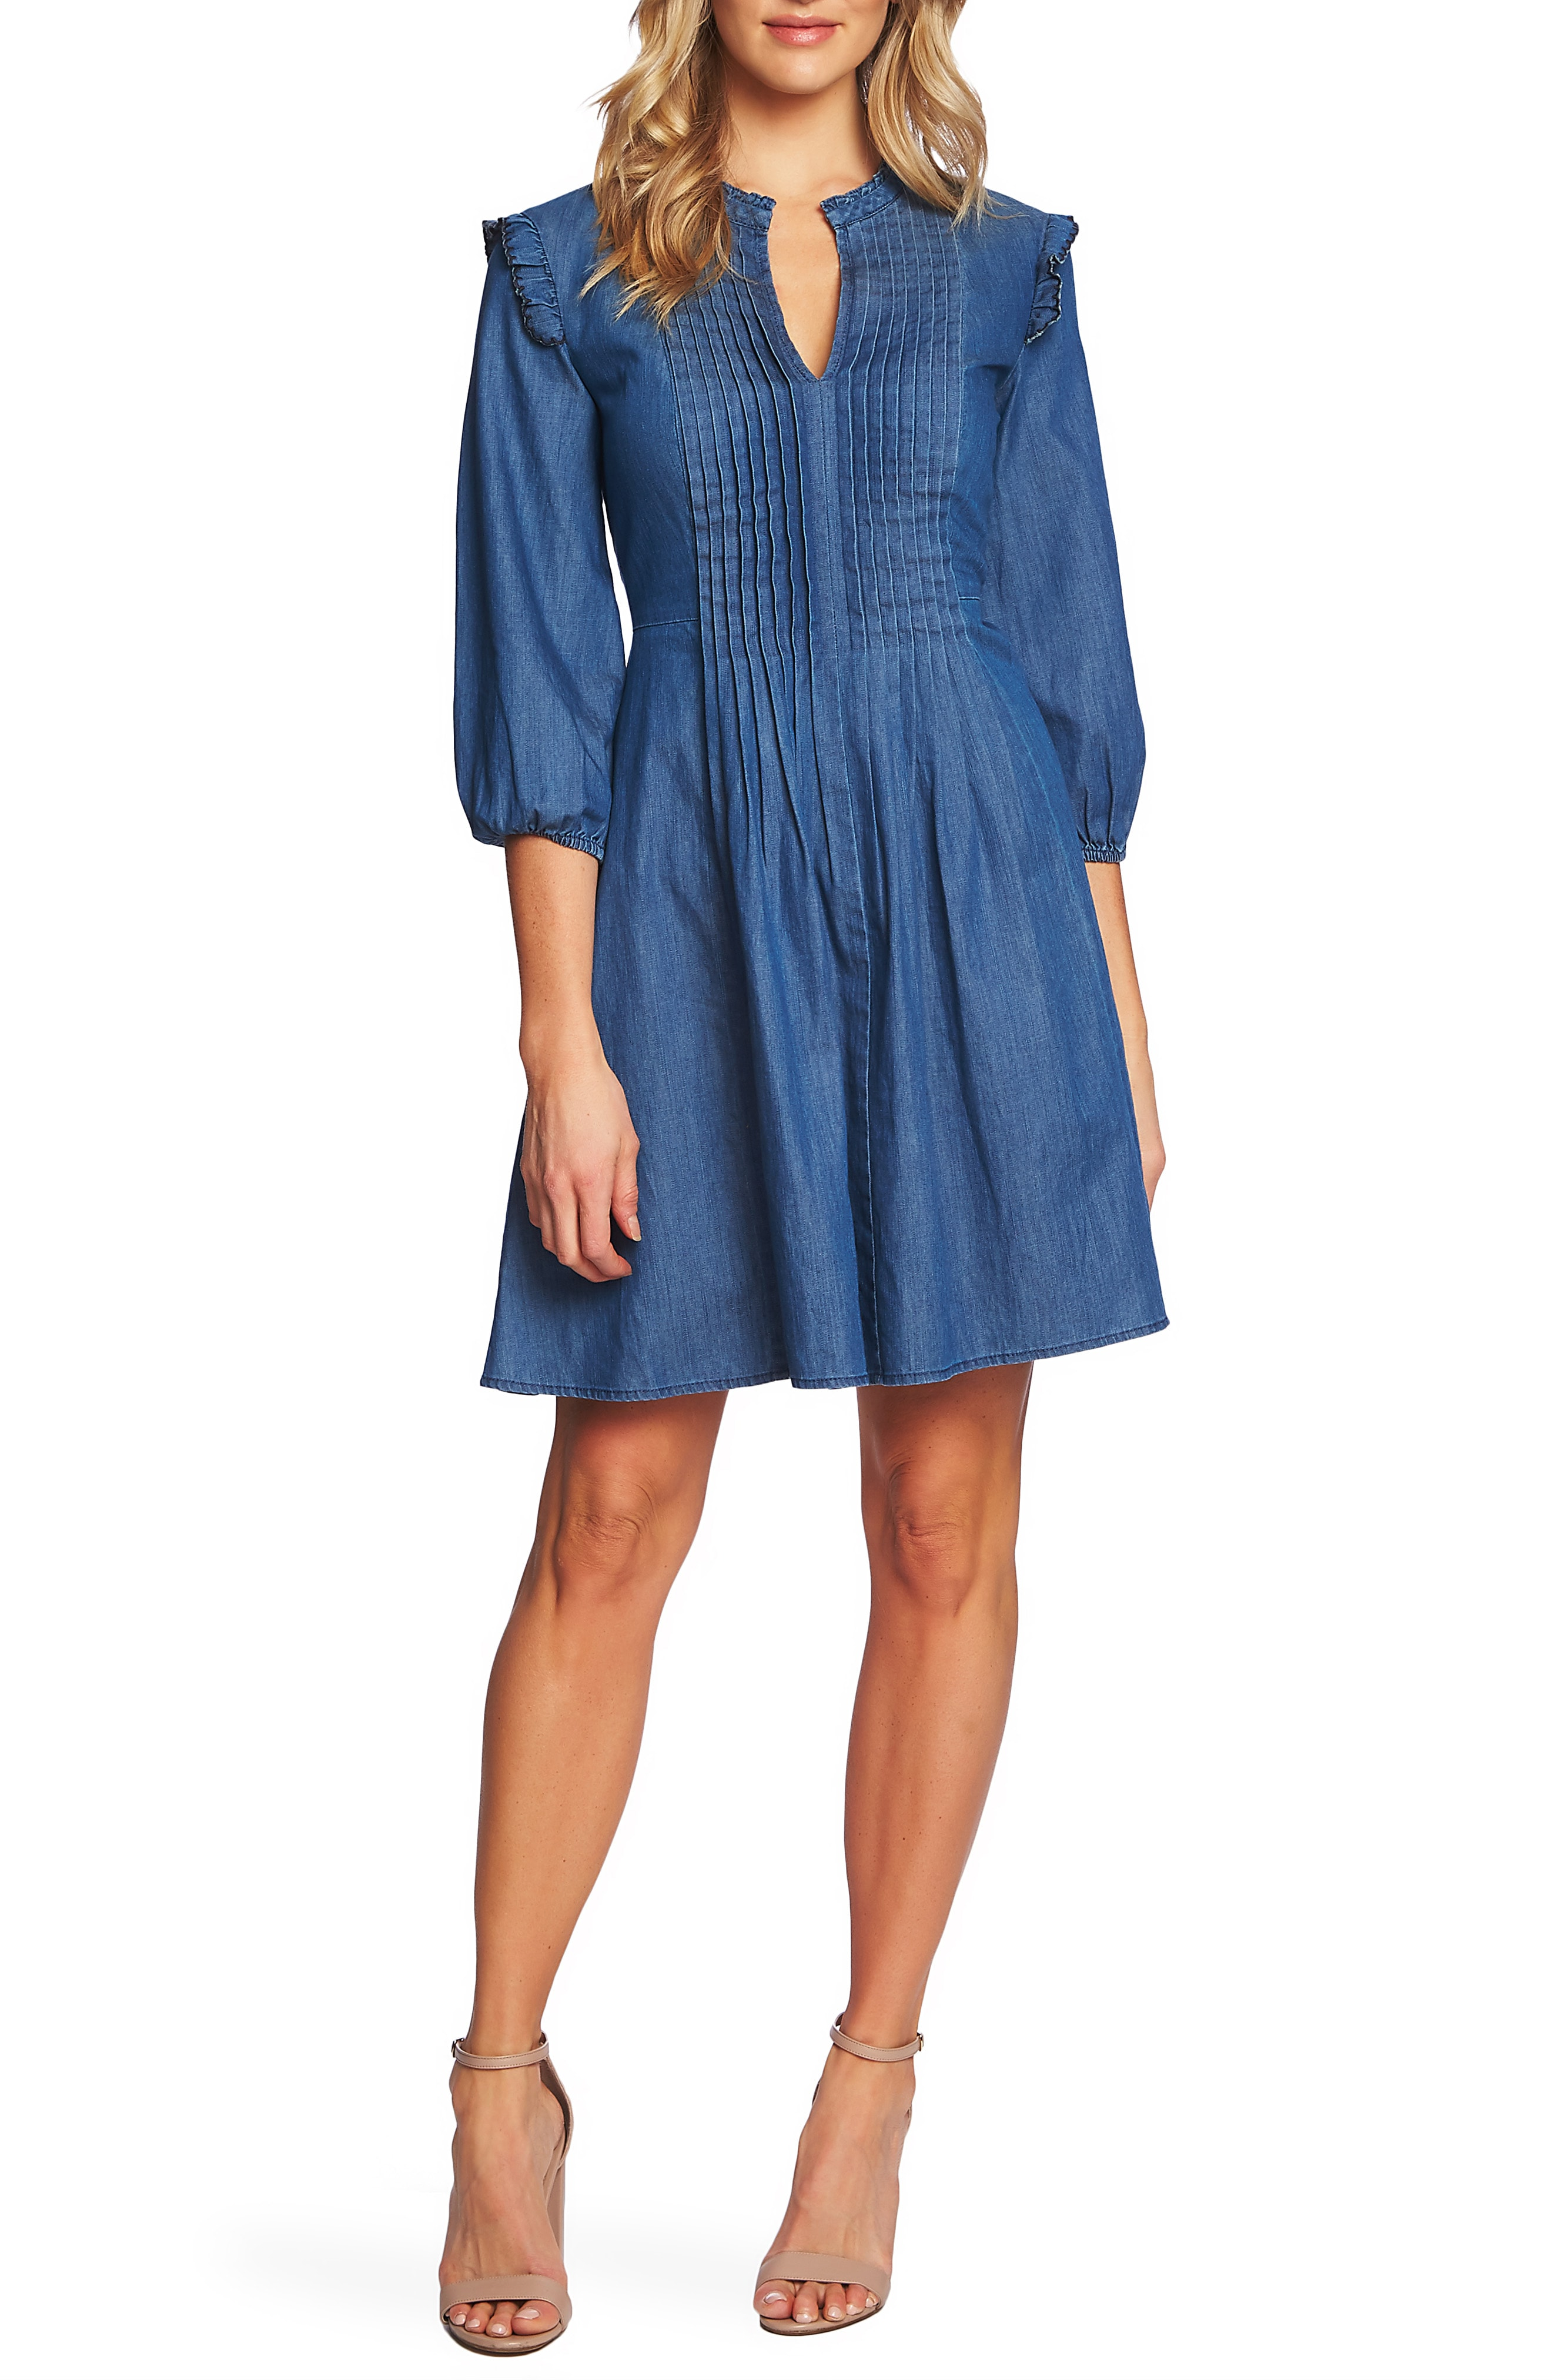 denim dresses | Nordstrom